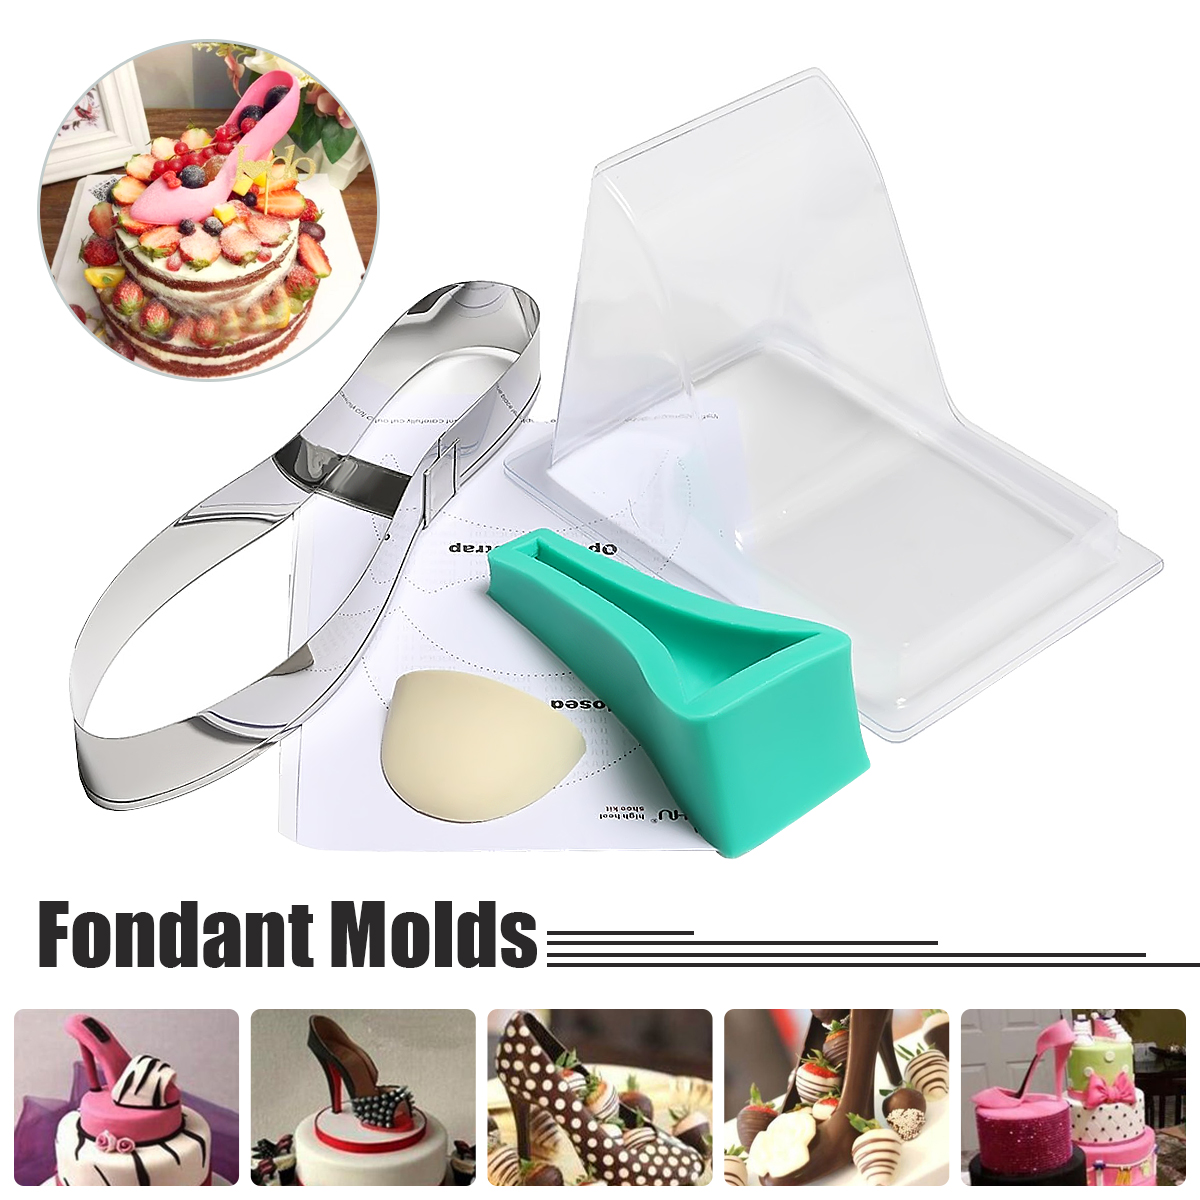 High Heel Shoe Silicone Fondant Mould Kit Wedding Cake Decorating Template Mold